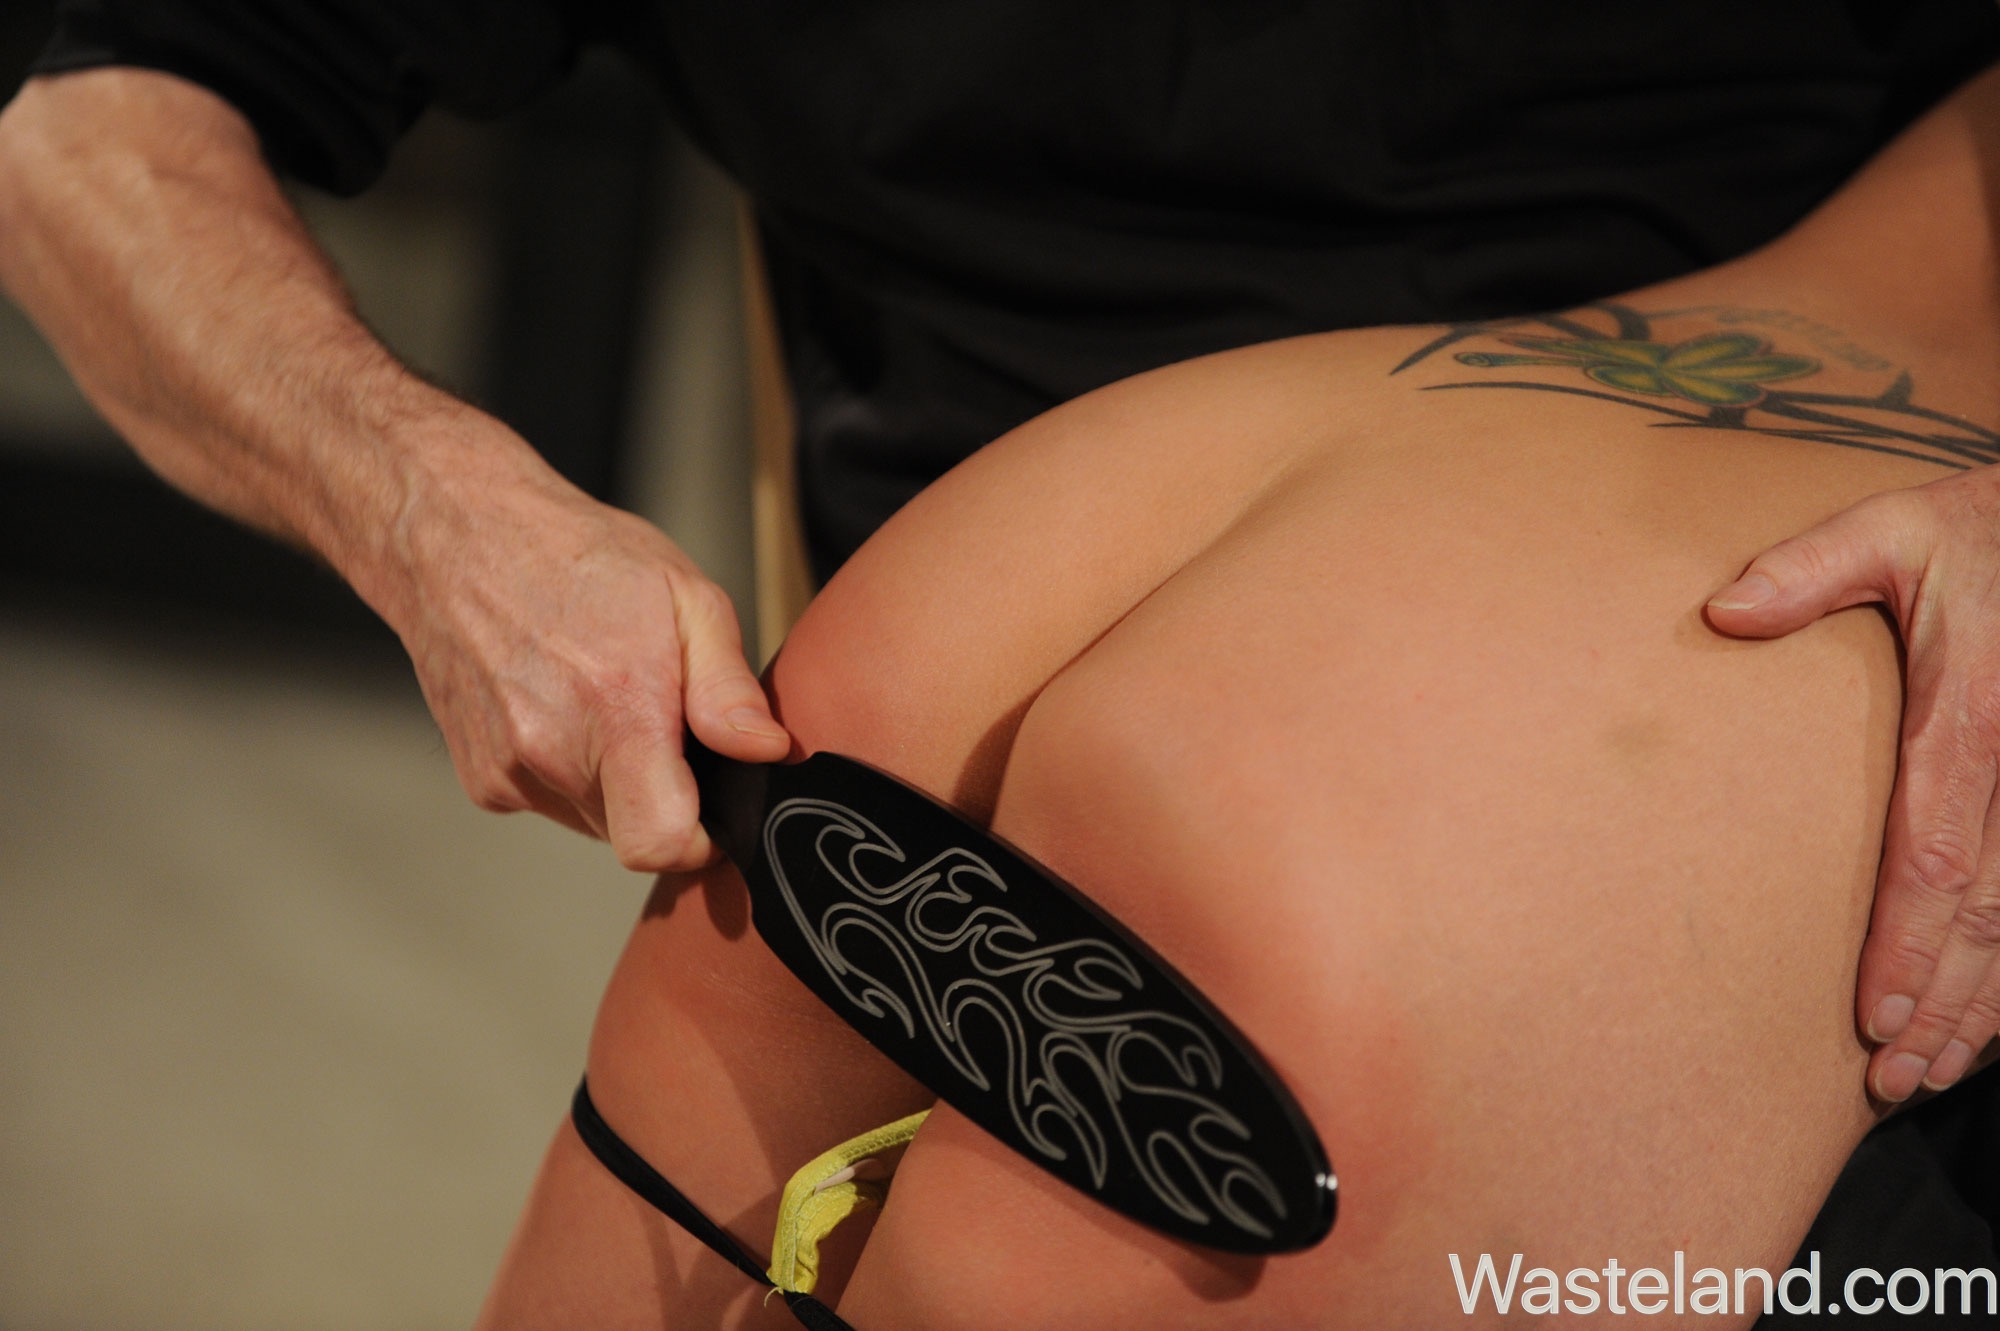 Salsa dance domination and spanking - 3 8